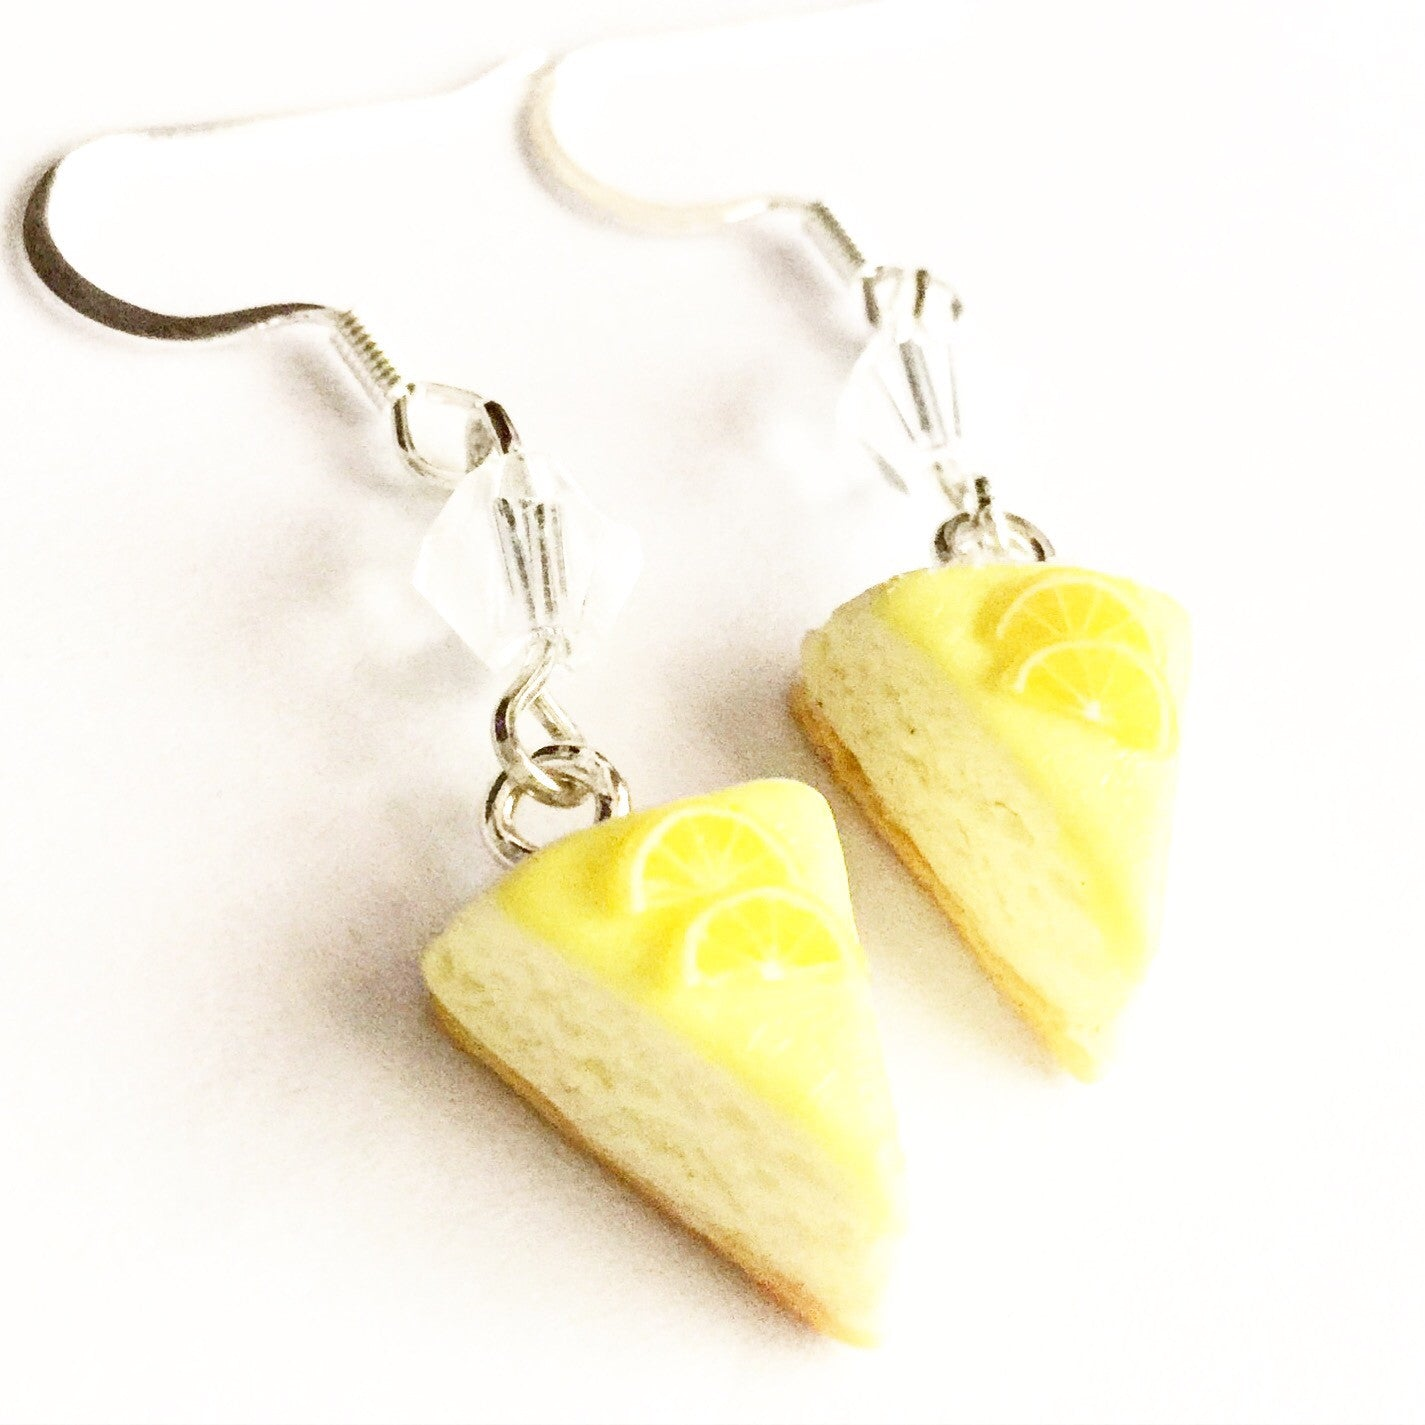 Lemon Cheesecake Dangle Earrings - Jillicious charms and accessories